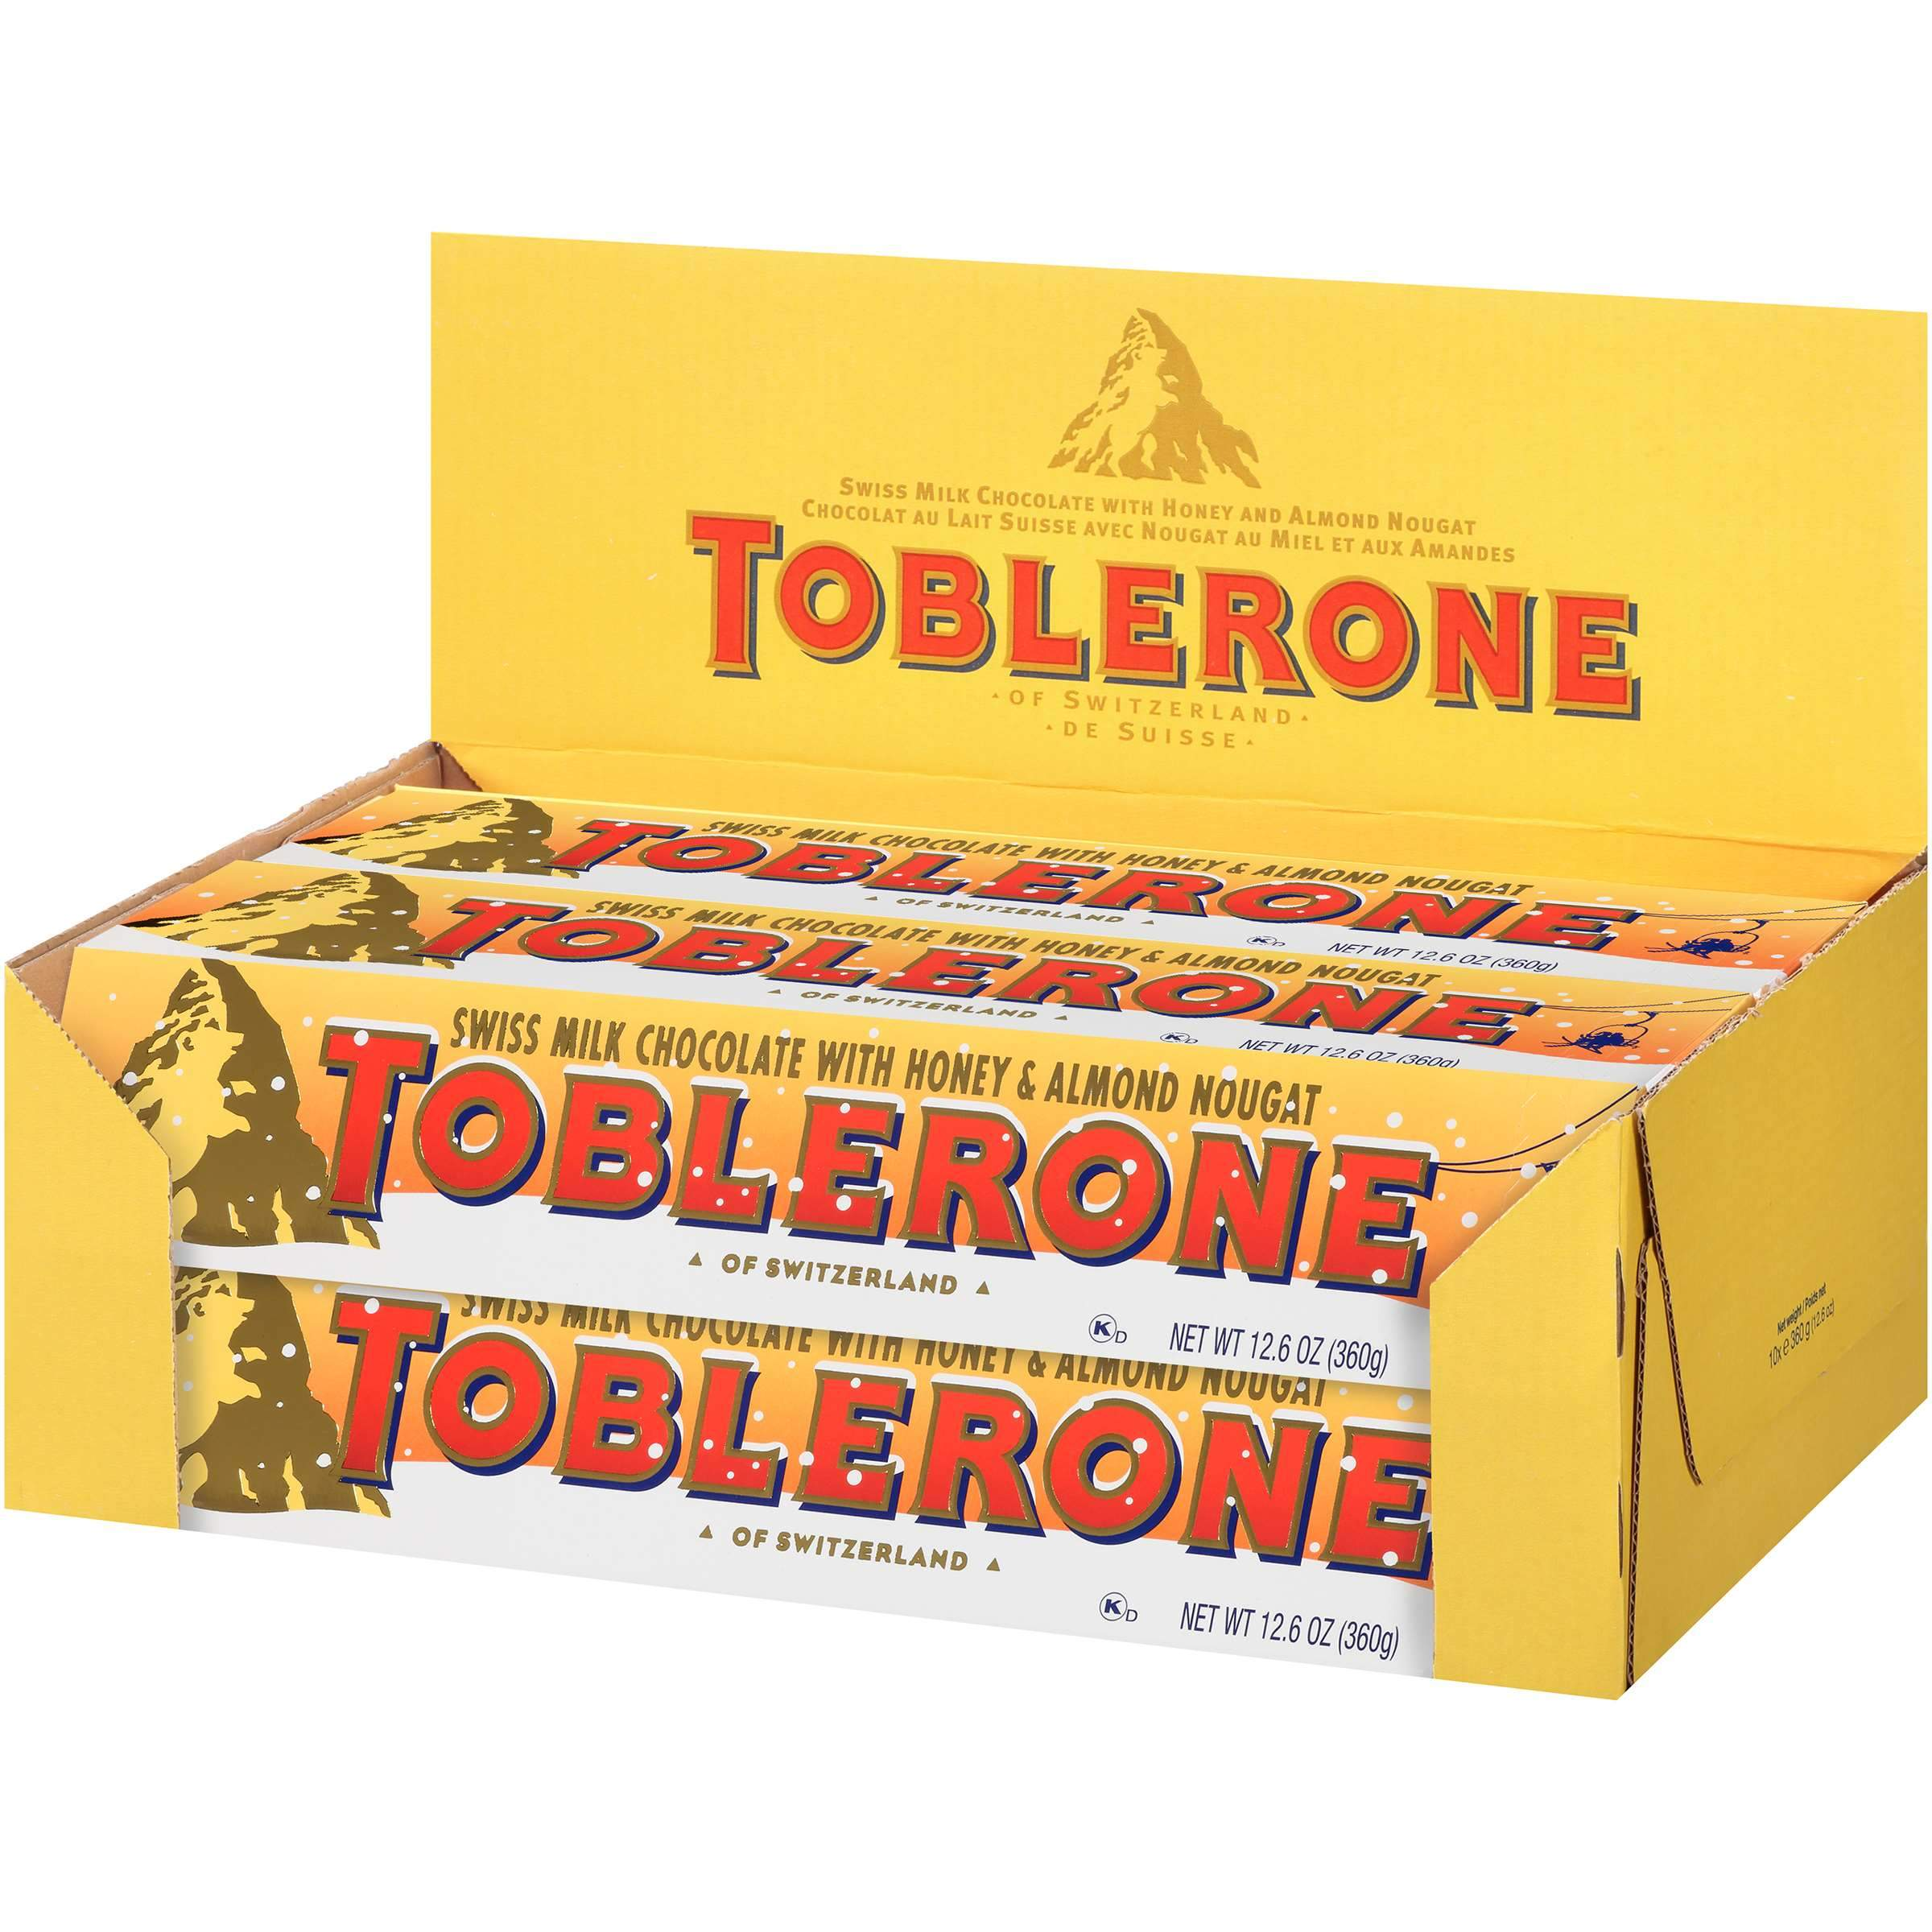 Toblerone Swiss Chocolate with Honey & Almond Nougat Meltable Toblerone Holiday 12.6 Oz-10 Count